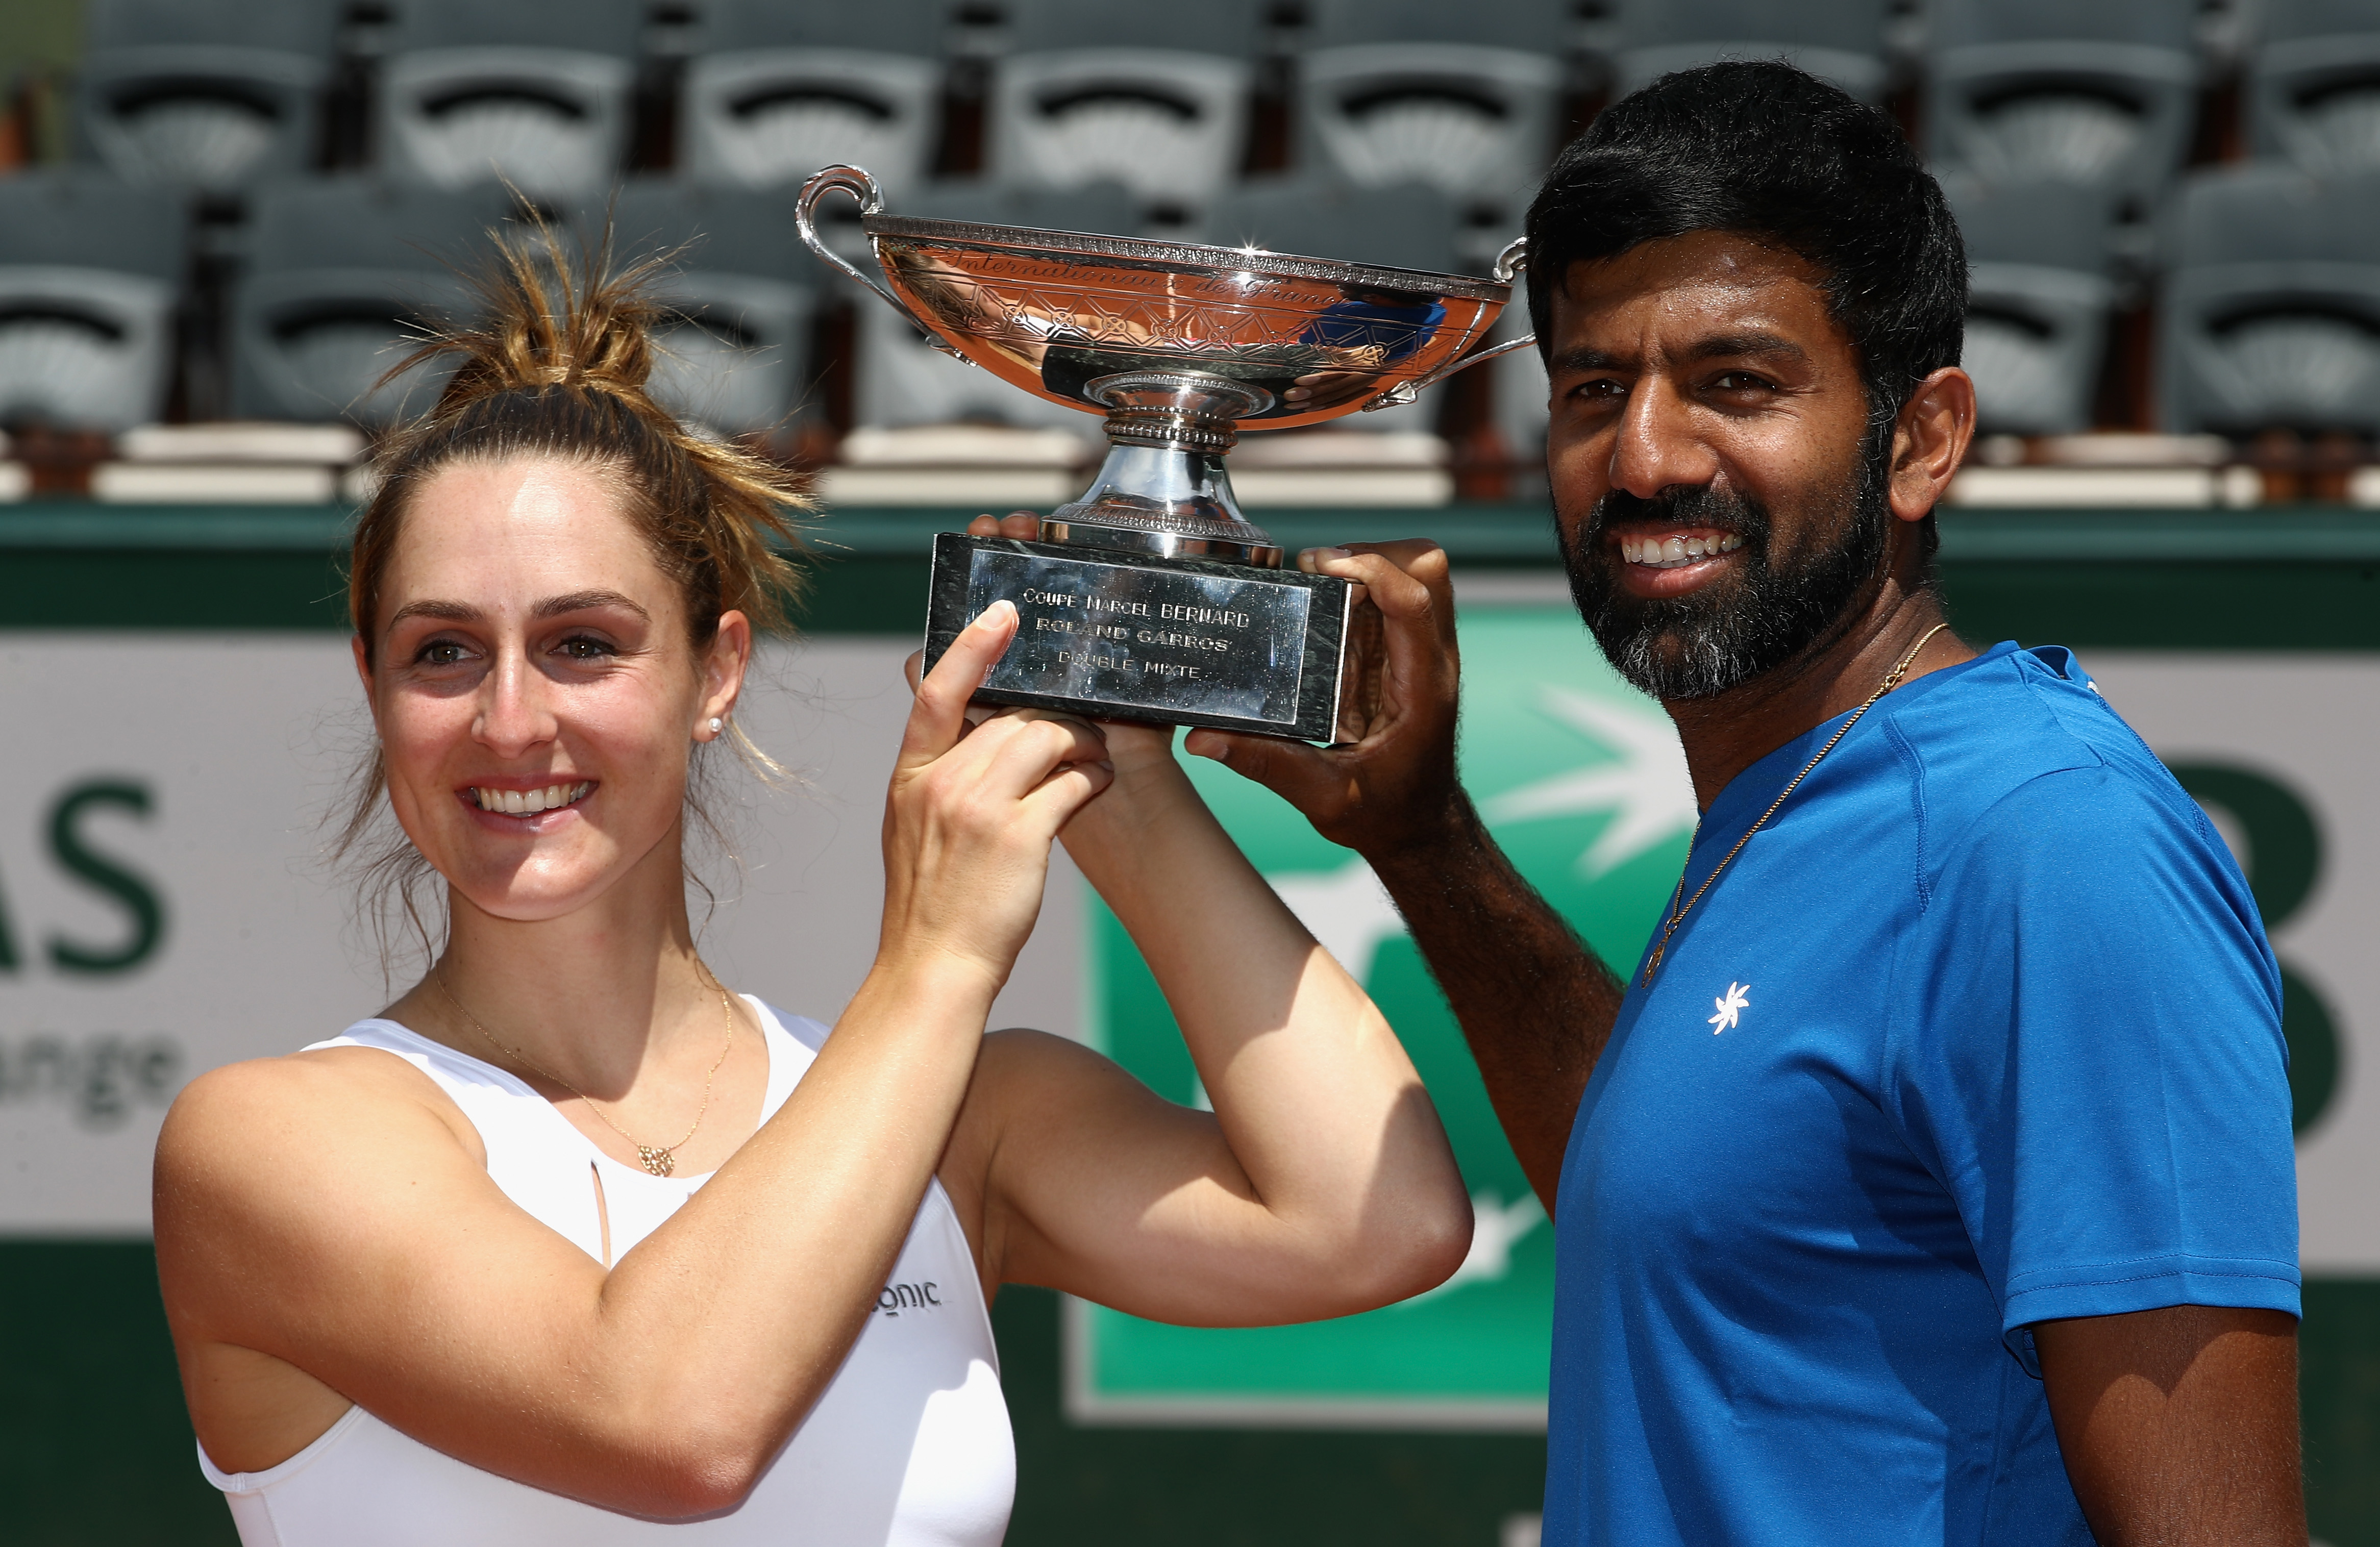 PARIS, FRANCE - JUNE 08:  Gabriela Dabrowski of Canada and Rohan Bopanna of India celebrate with the trophy following victory in the mixed doubles final against Anna-Lena Groenefeld of Germany and Robert Farah of Columbia on day twelve of the 2017 French Open at Roland Garros on June 8, 2017 in Paris, France.  (Photo by Julian Finney/Getty Images)